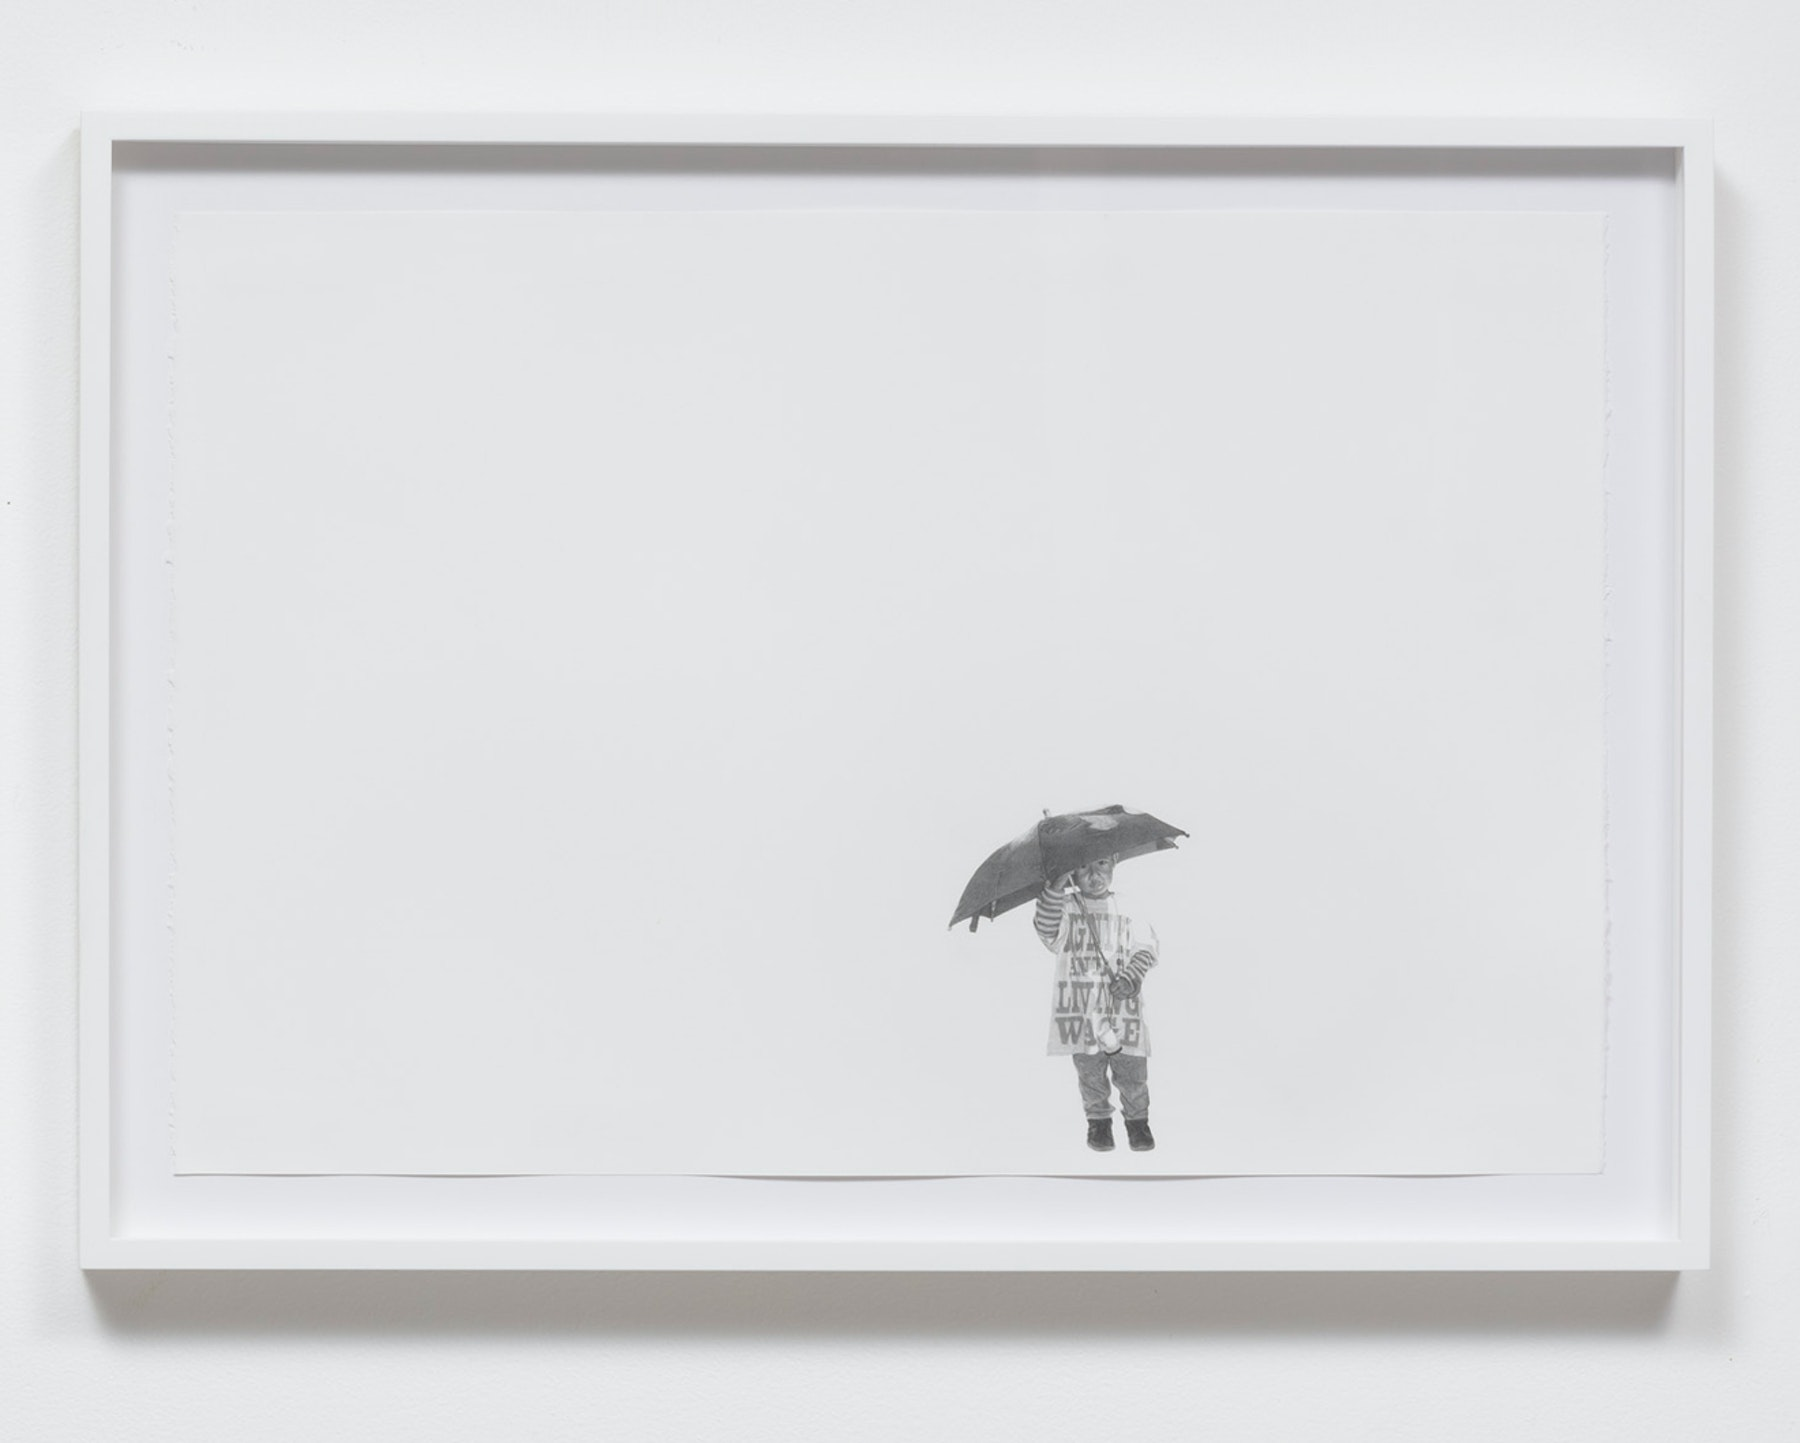 """Andrea Bowers """"Fight for $15 March (December 4, 2014),"""" 2015 Graphite on paper 15.00"""" H x 22.00"""" W (38.10cm H x 55.88cm W) framed Inventory #BOW466 Courtesy of the Artist and Vielmetter Los Angeles Photo credit: Robert Wedemeyer"""